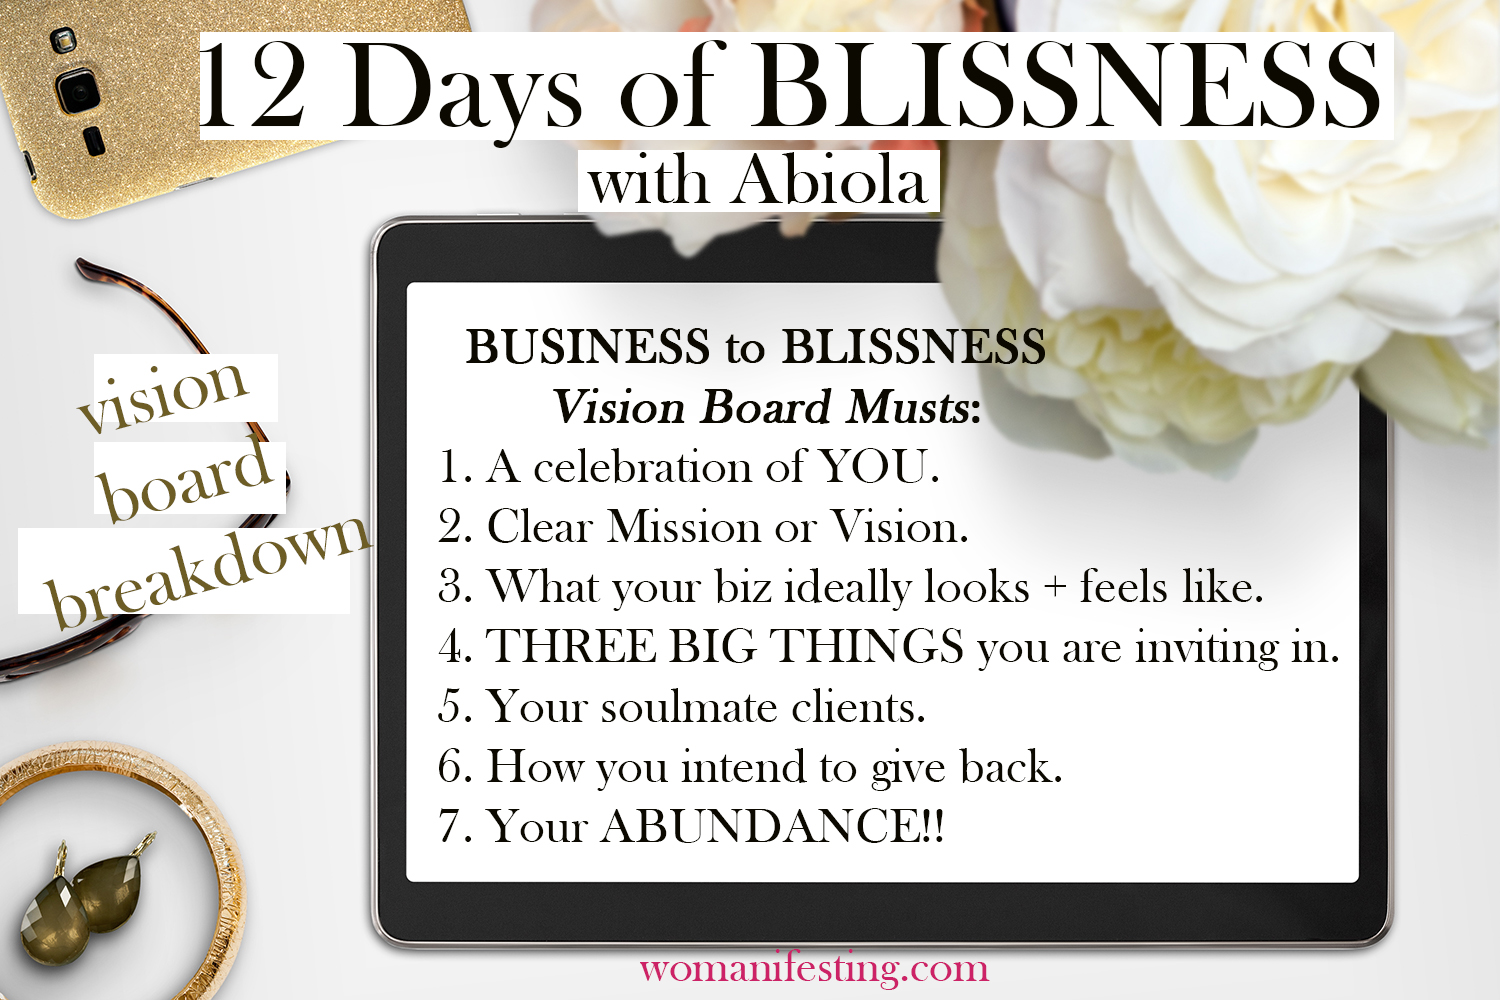 12 days of blissness 2018 vision board list